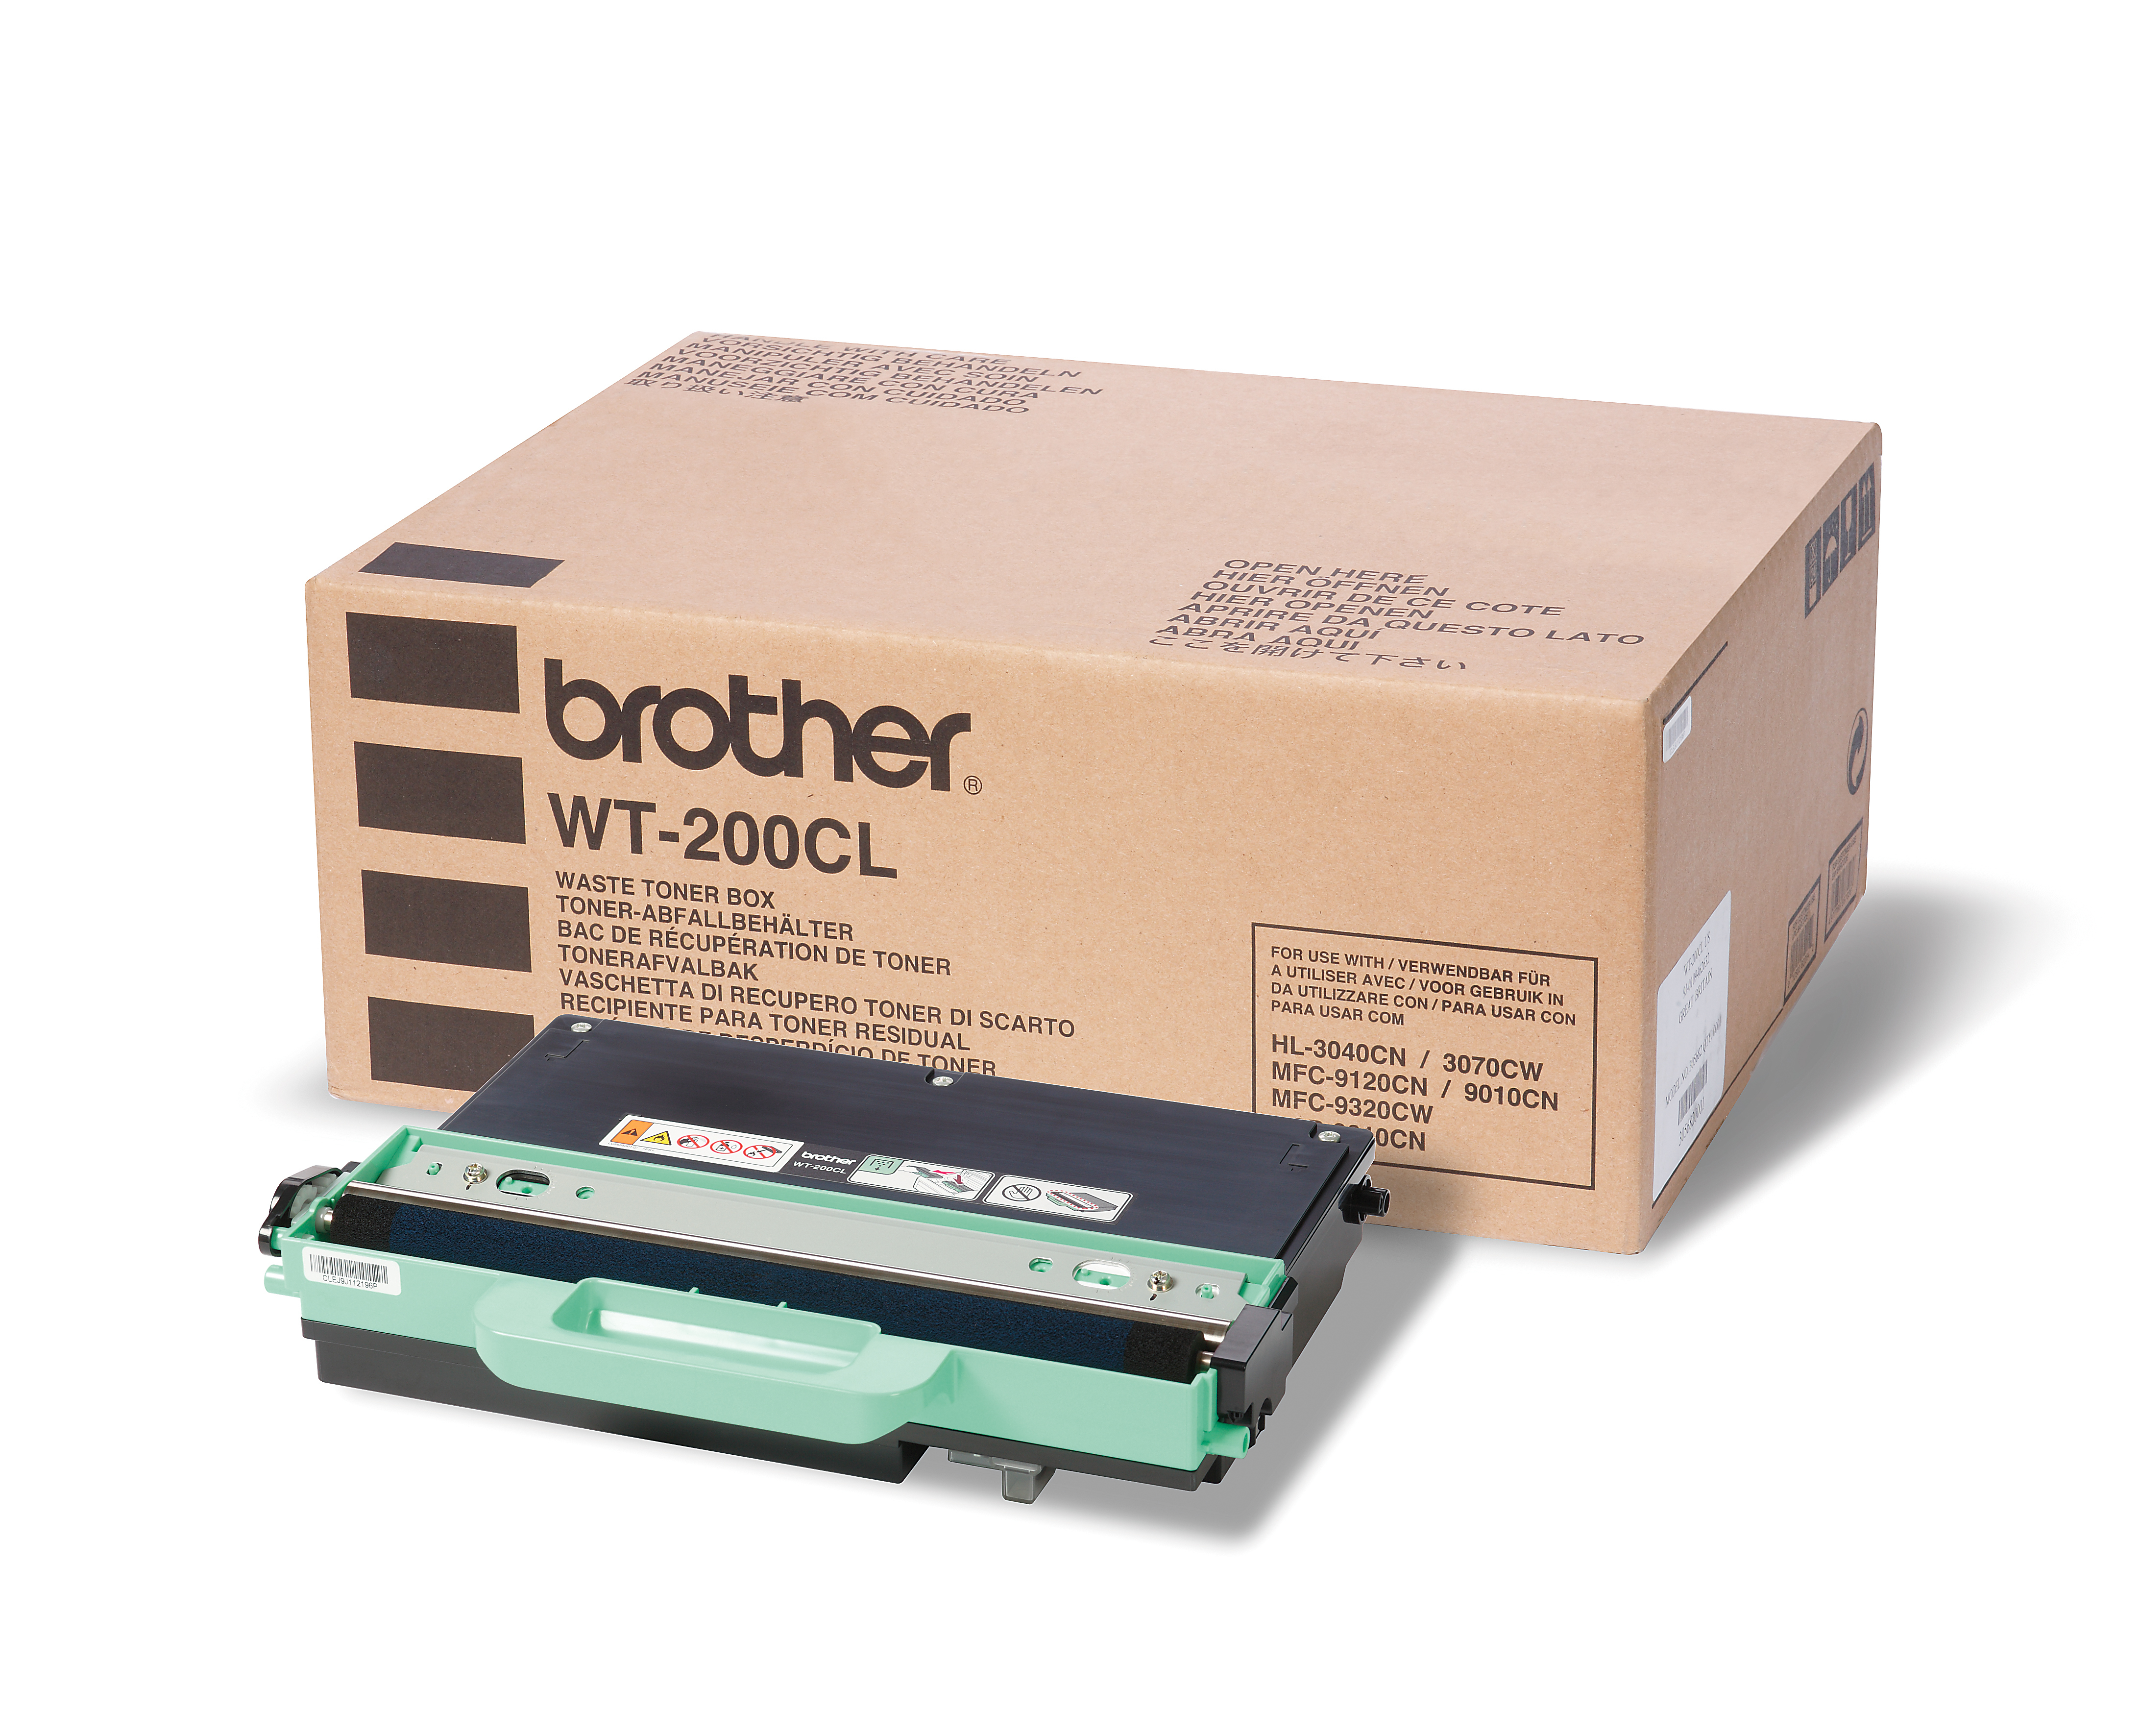 Brother WT-200 CL